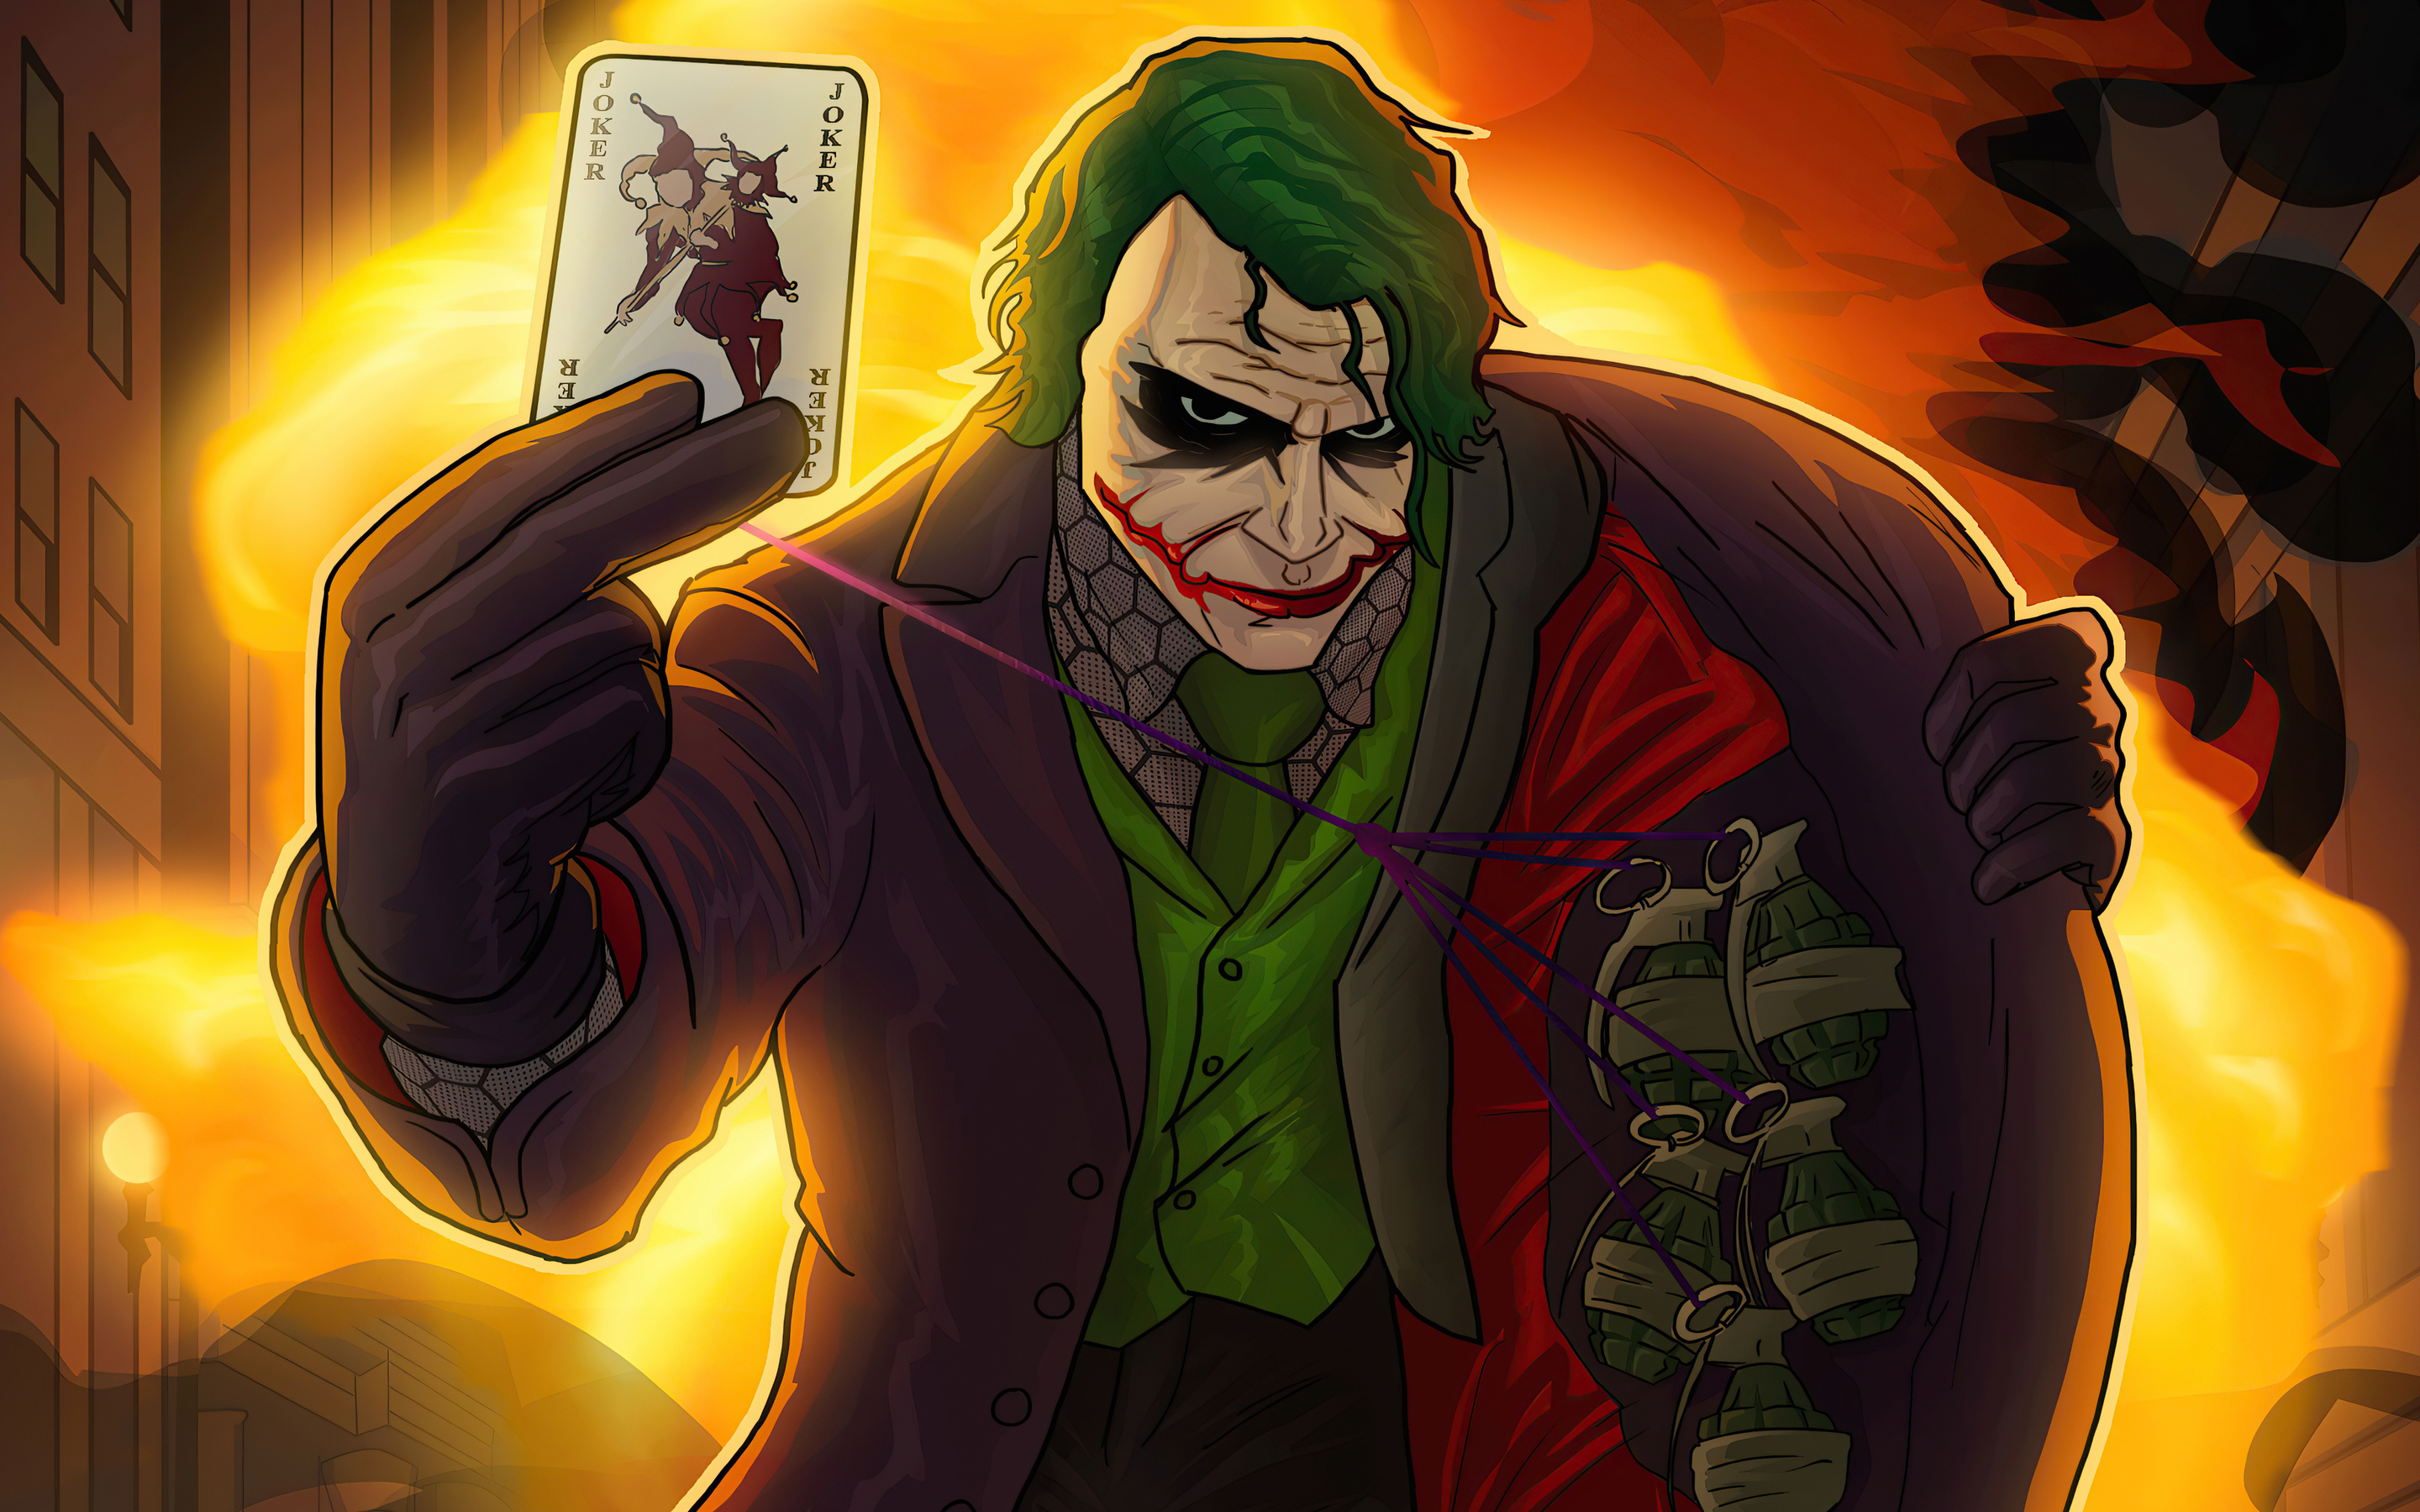 joker-with-bomb-and-card-e9.jpg